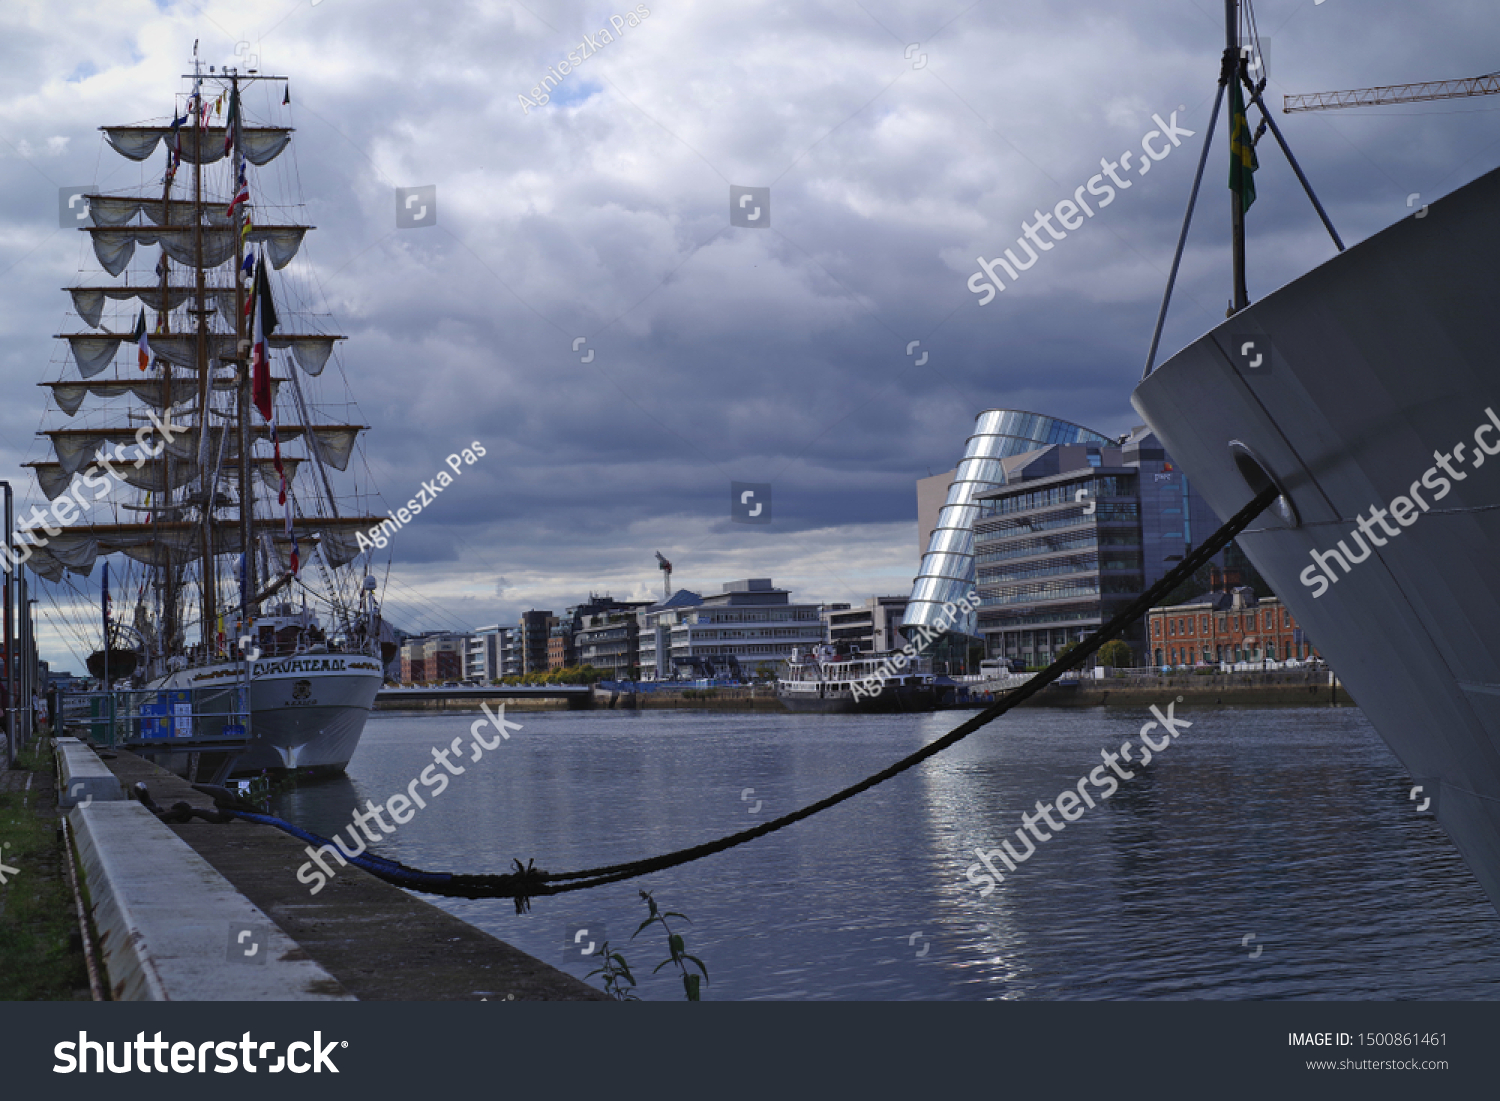 DUBLIN, IRELAND - SEPTEMBER 7, 2019: A view of the Convention Centre Dublin building. Navy ships and Liffey River in the front. Cloudy day.